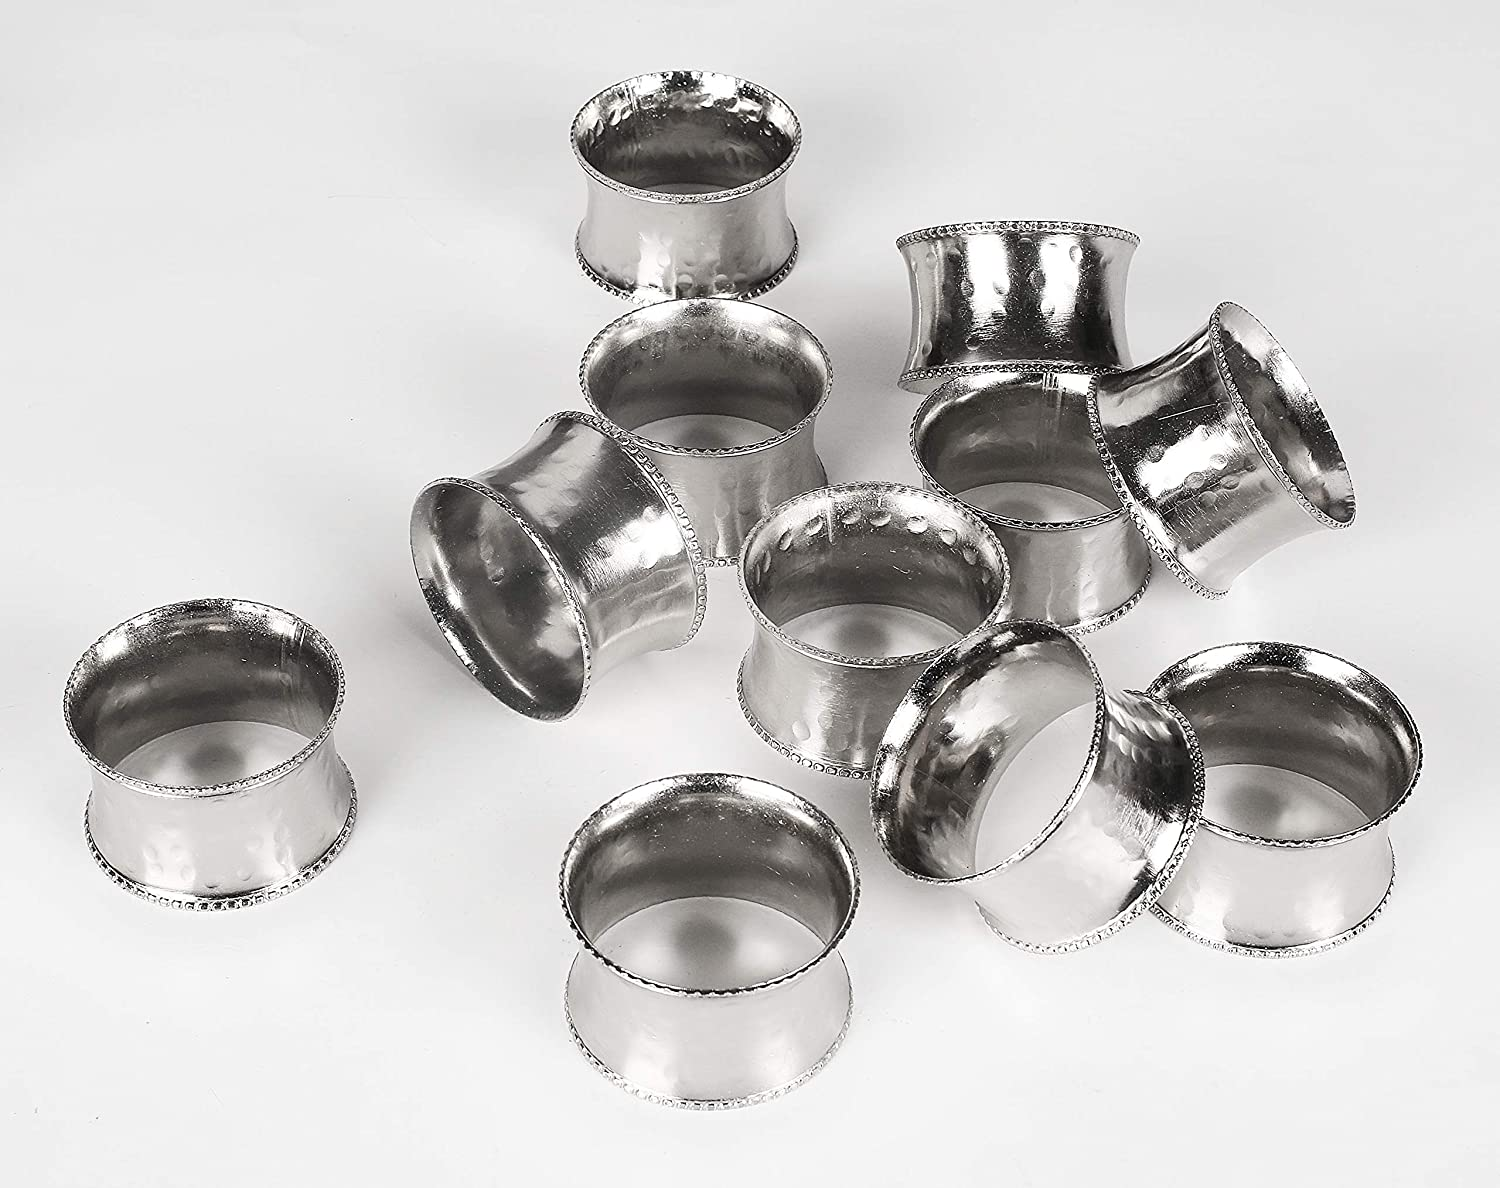 Classic Everyday Metal Napkin Rings with Elegant Beaded Rim, Hand Made by Skilled artisans, for Wedding Receptions, Dinners Parties, Family Gatherings, or Everyday Use - Set of 4 - Silver